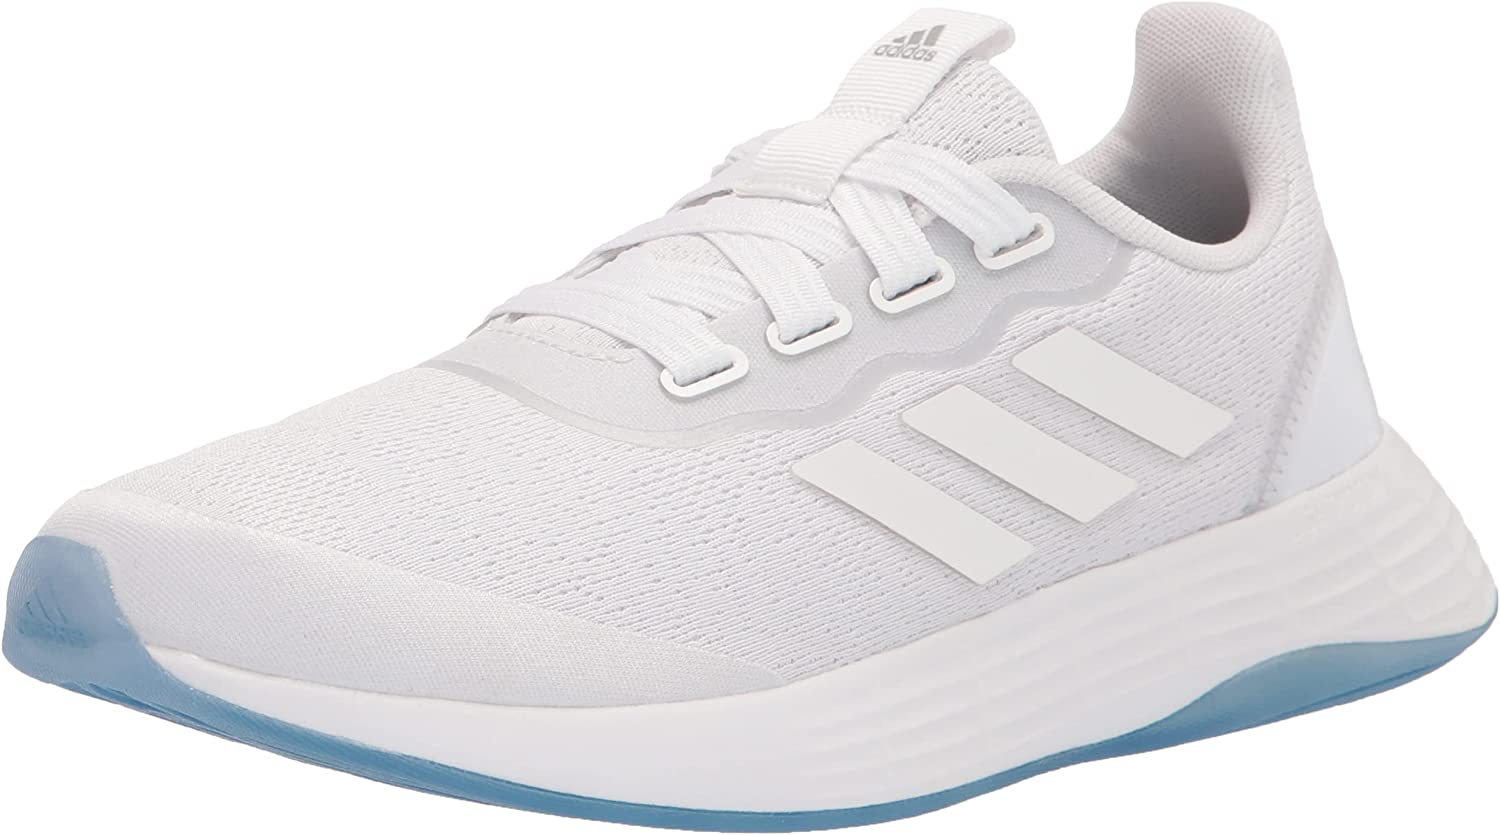 adidas Women's Qt Racer Challenge the lowest price of Japan ☆ Shoe Running Ranking TOP5 Sport